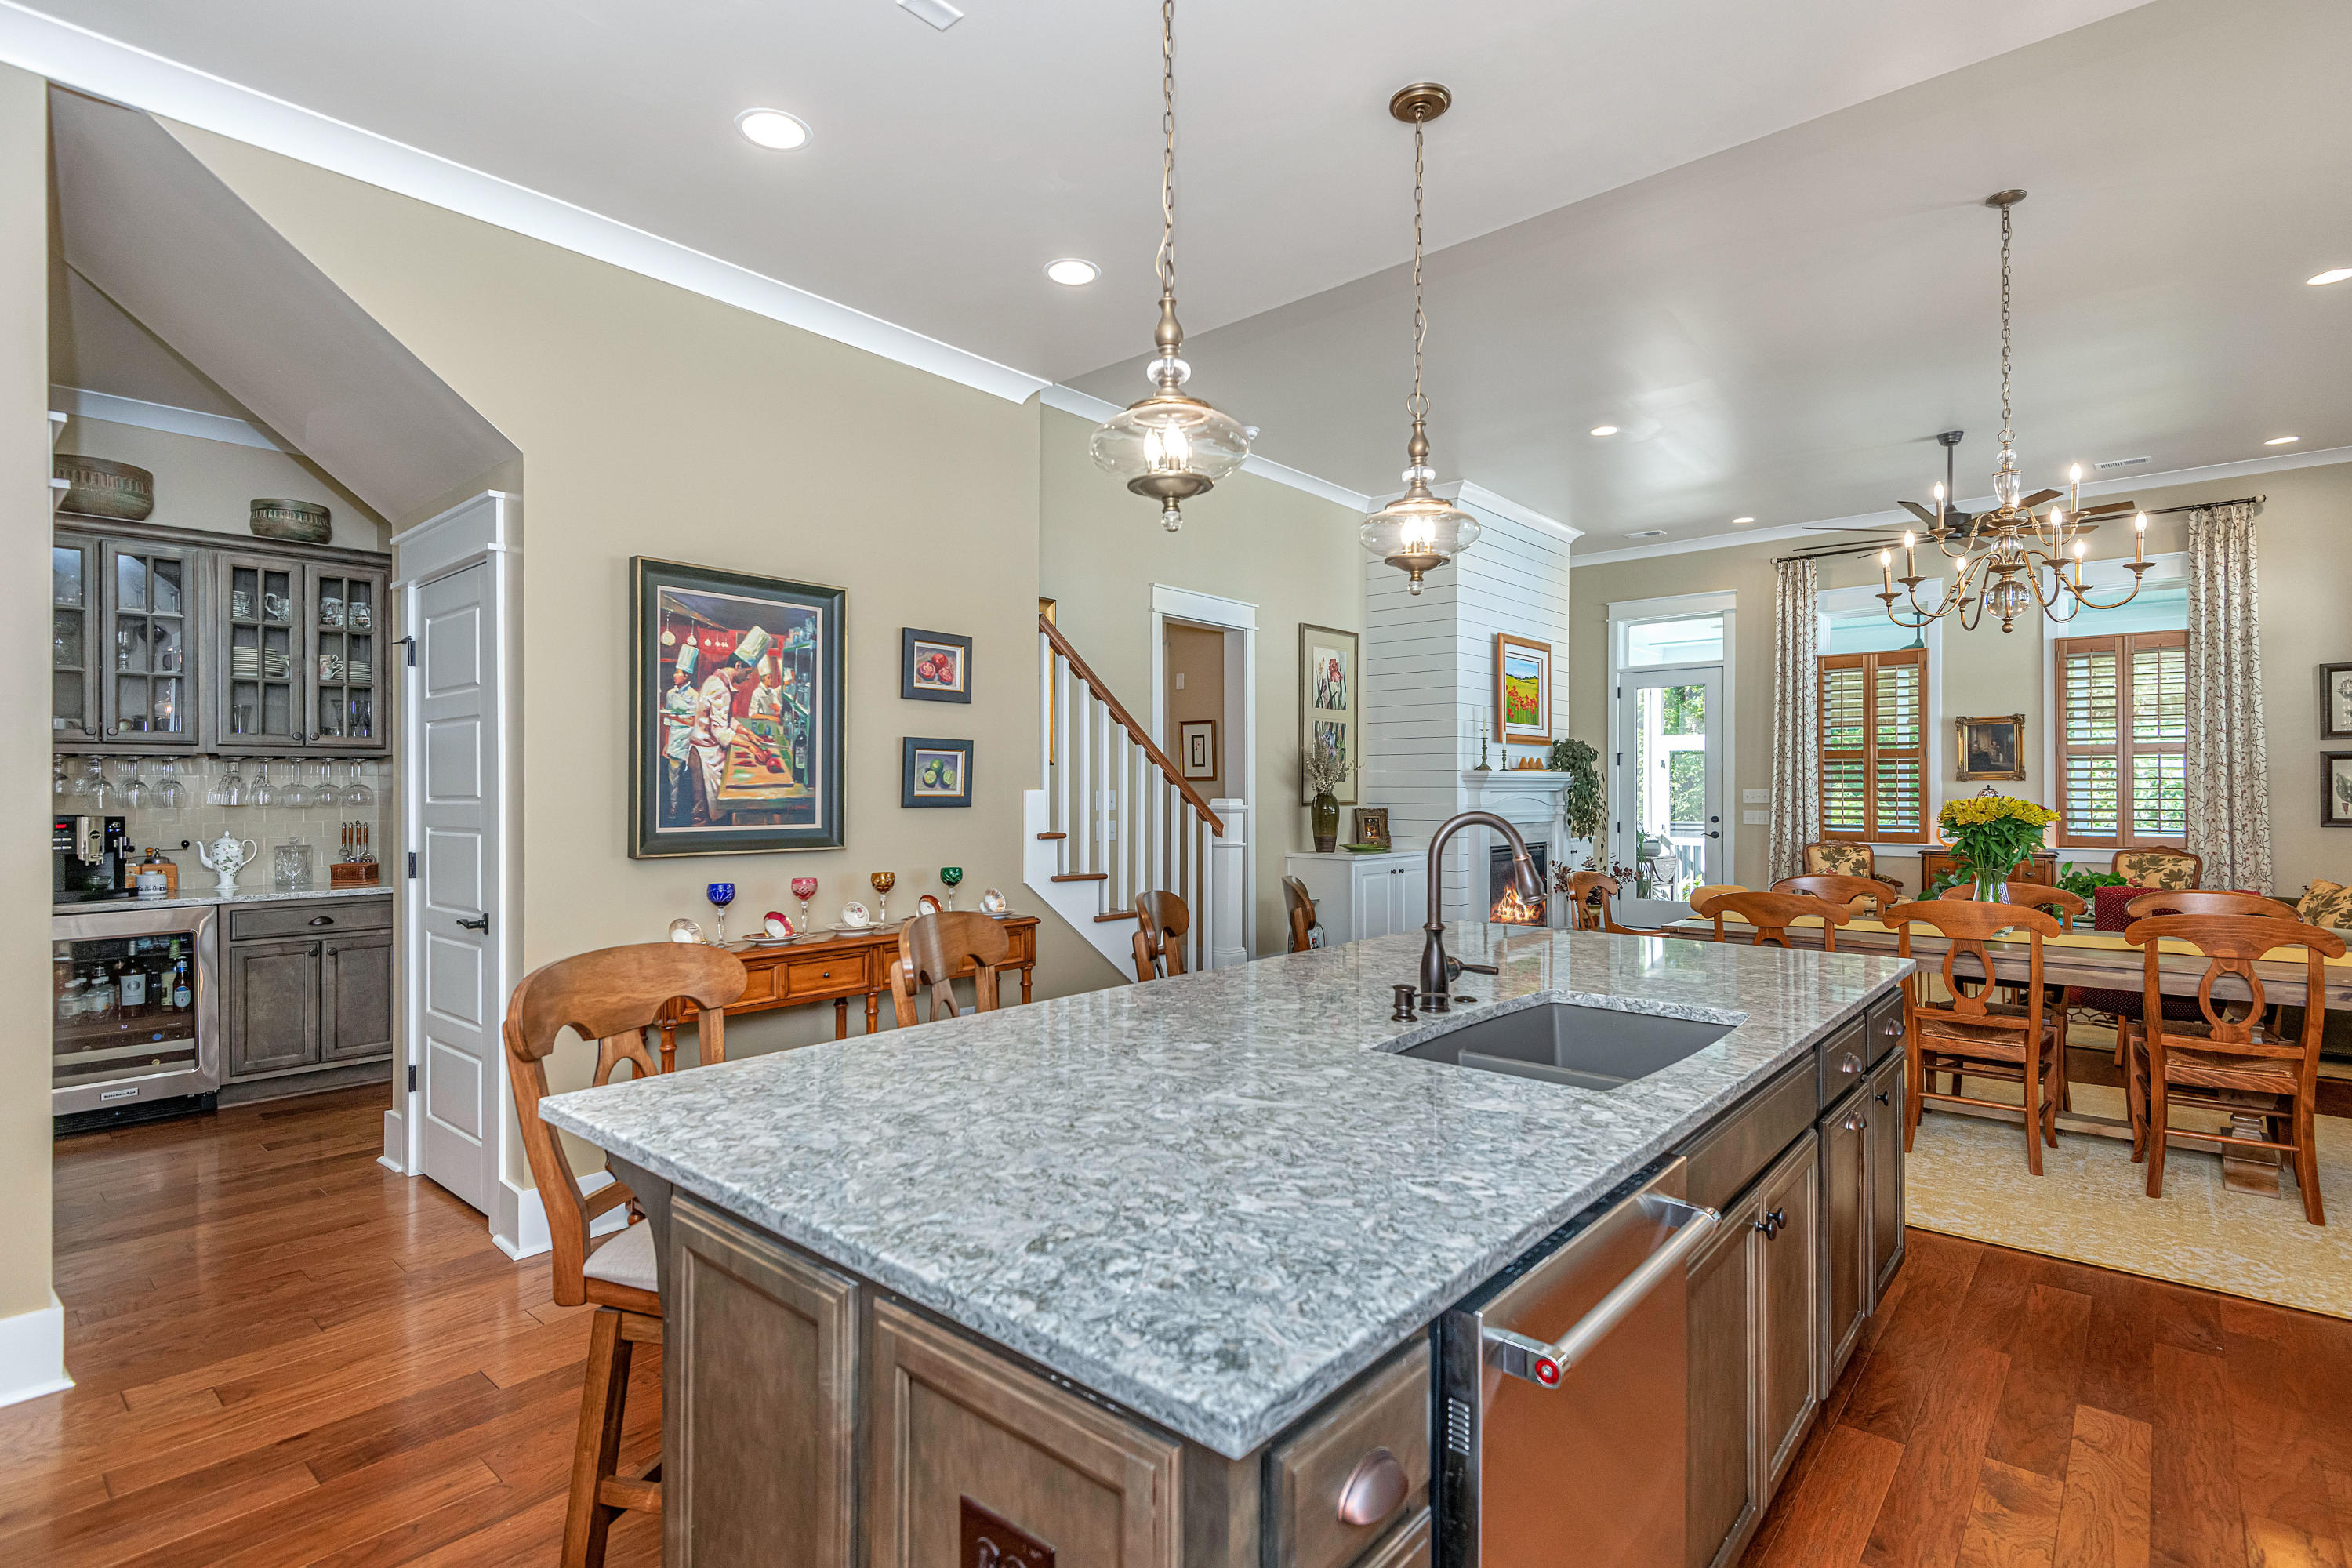 Dunes West Homes For Sale - 2870 Clearwater, Mount Pleasant, SC - 37